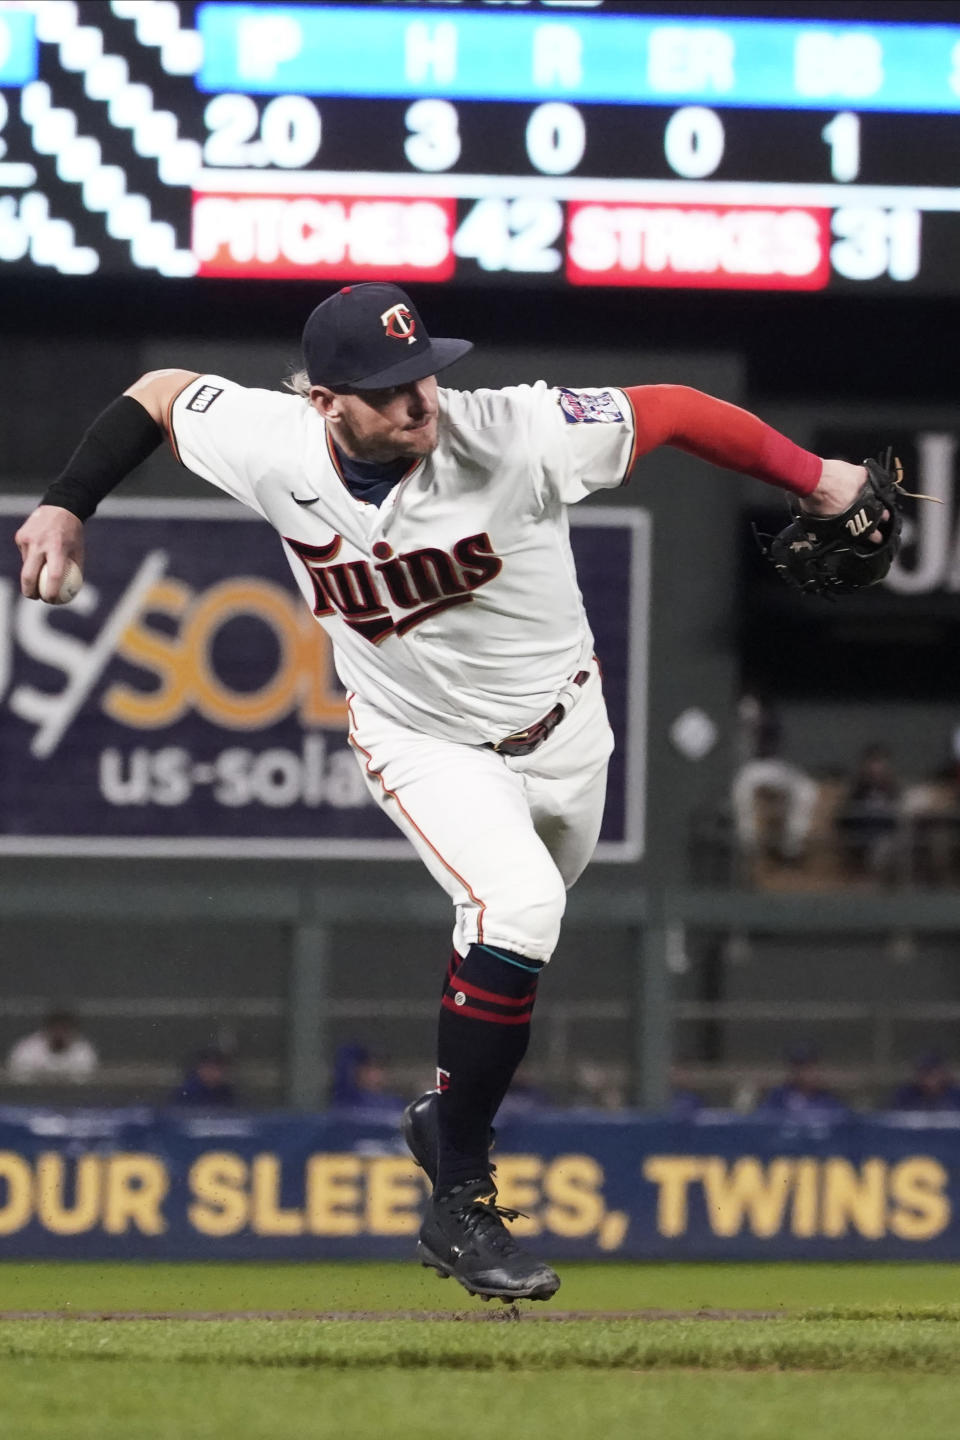 Minnesota Twins third baseman Josh Donaldson fields a grounder by Toronto Blue Jays' Vladimir Guerrero Jr. who beats the throw for a single in the second inning of a baseball game, Thursday, Sept. 23, 2021, in Minneapolis. (AP Photo/Jim Mone)